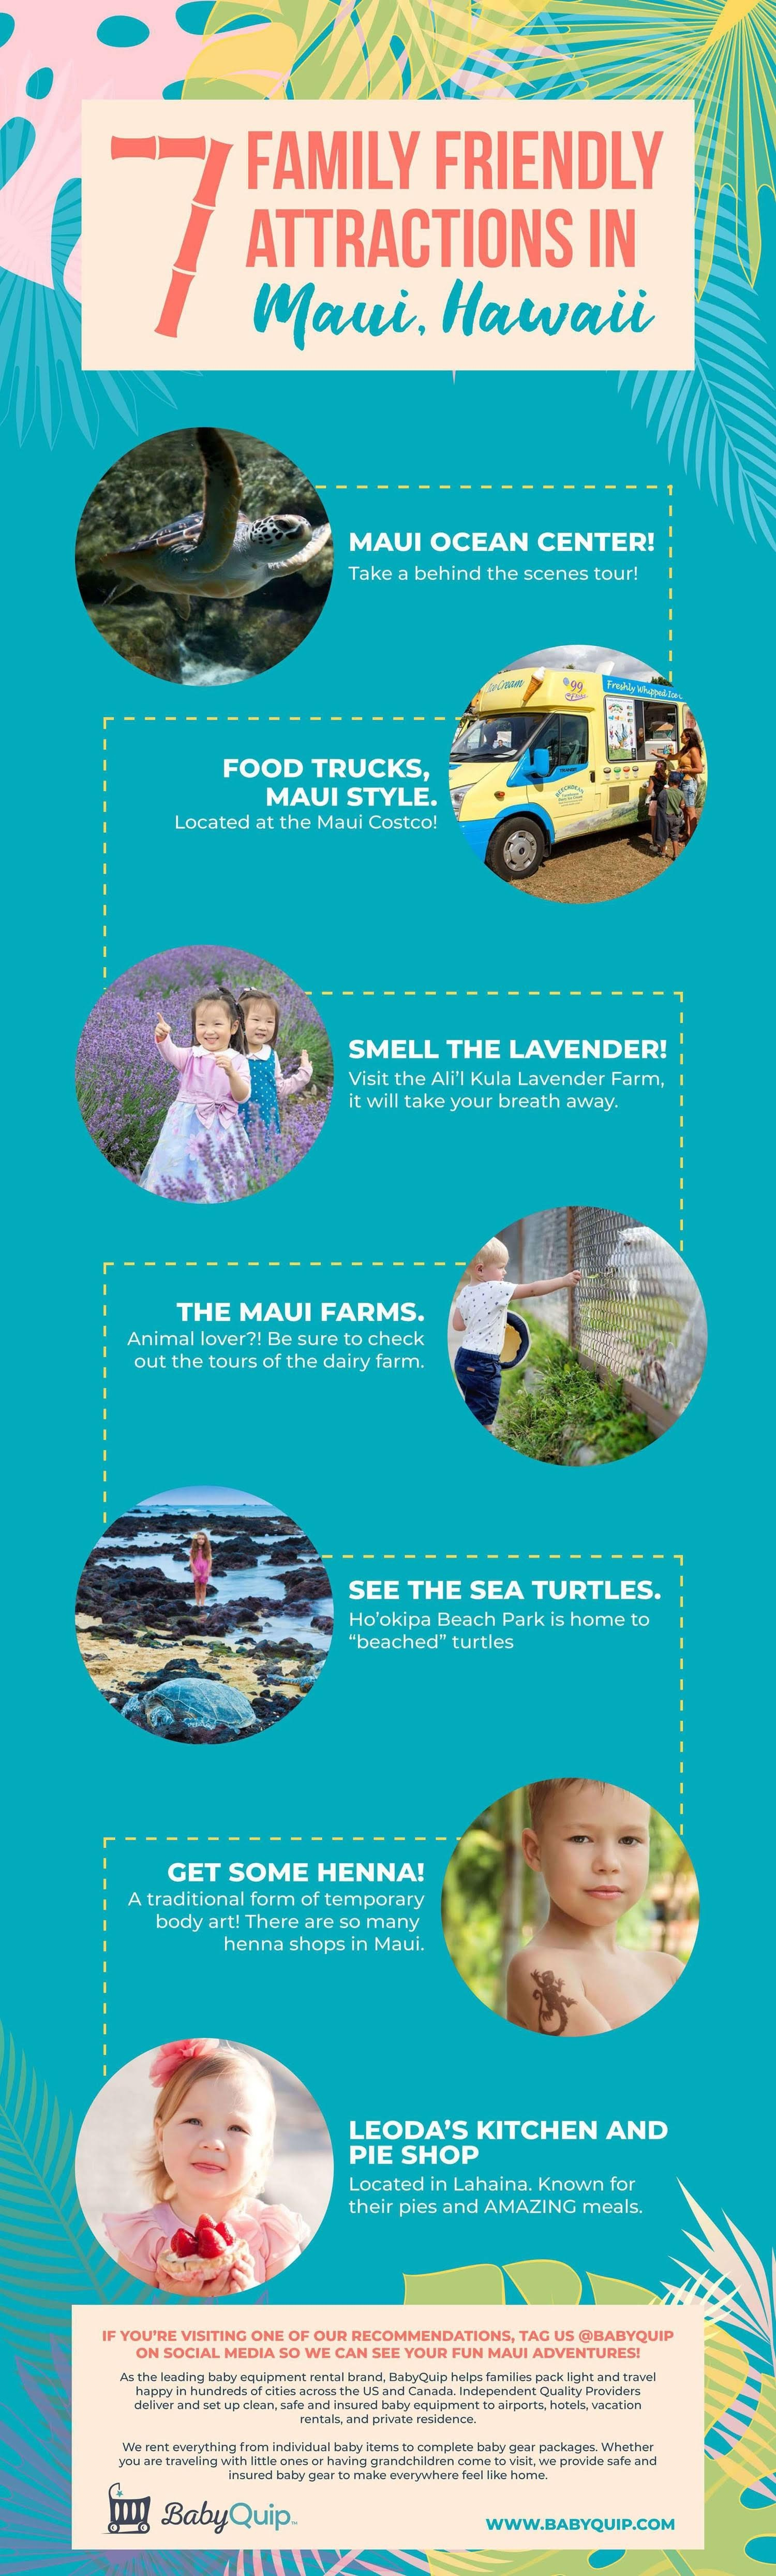 7 Family Friendly Attractions in Maui, Hawaii #infographic #infographic